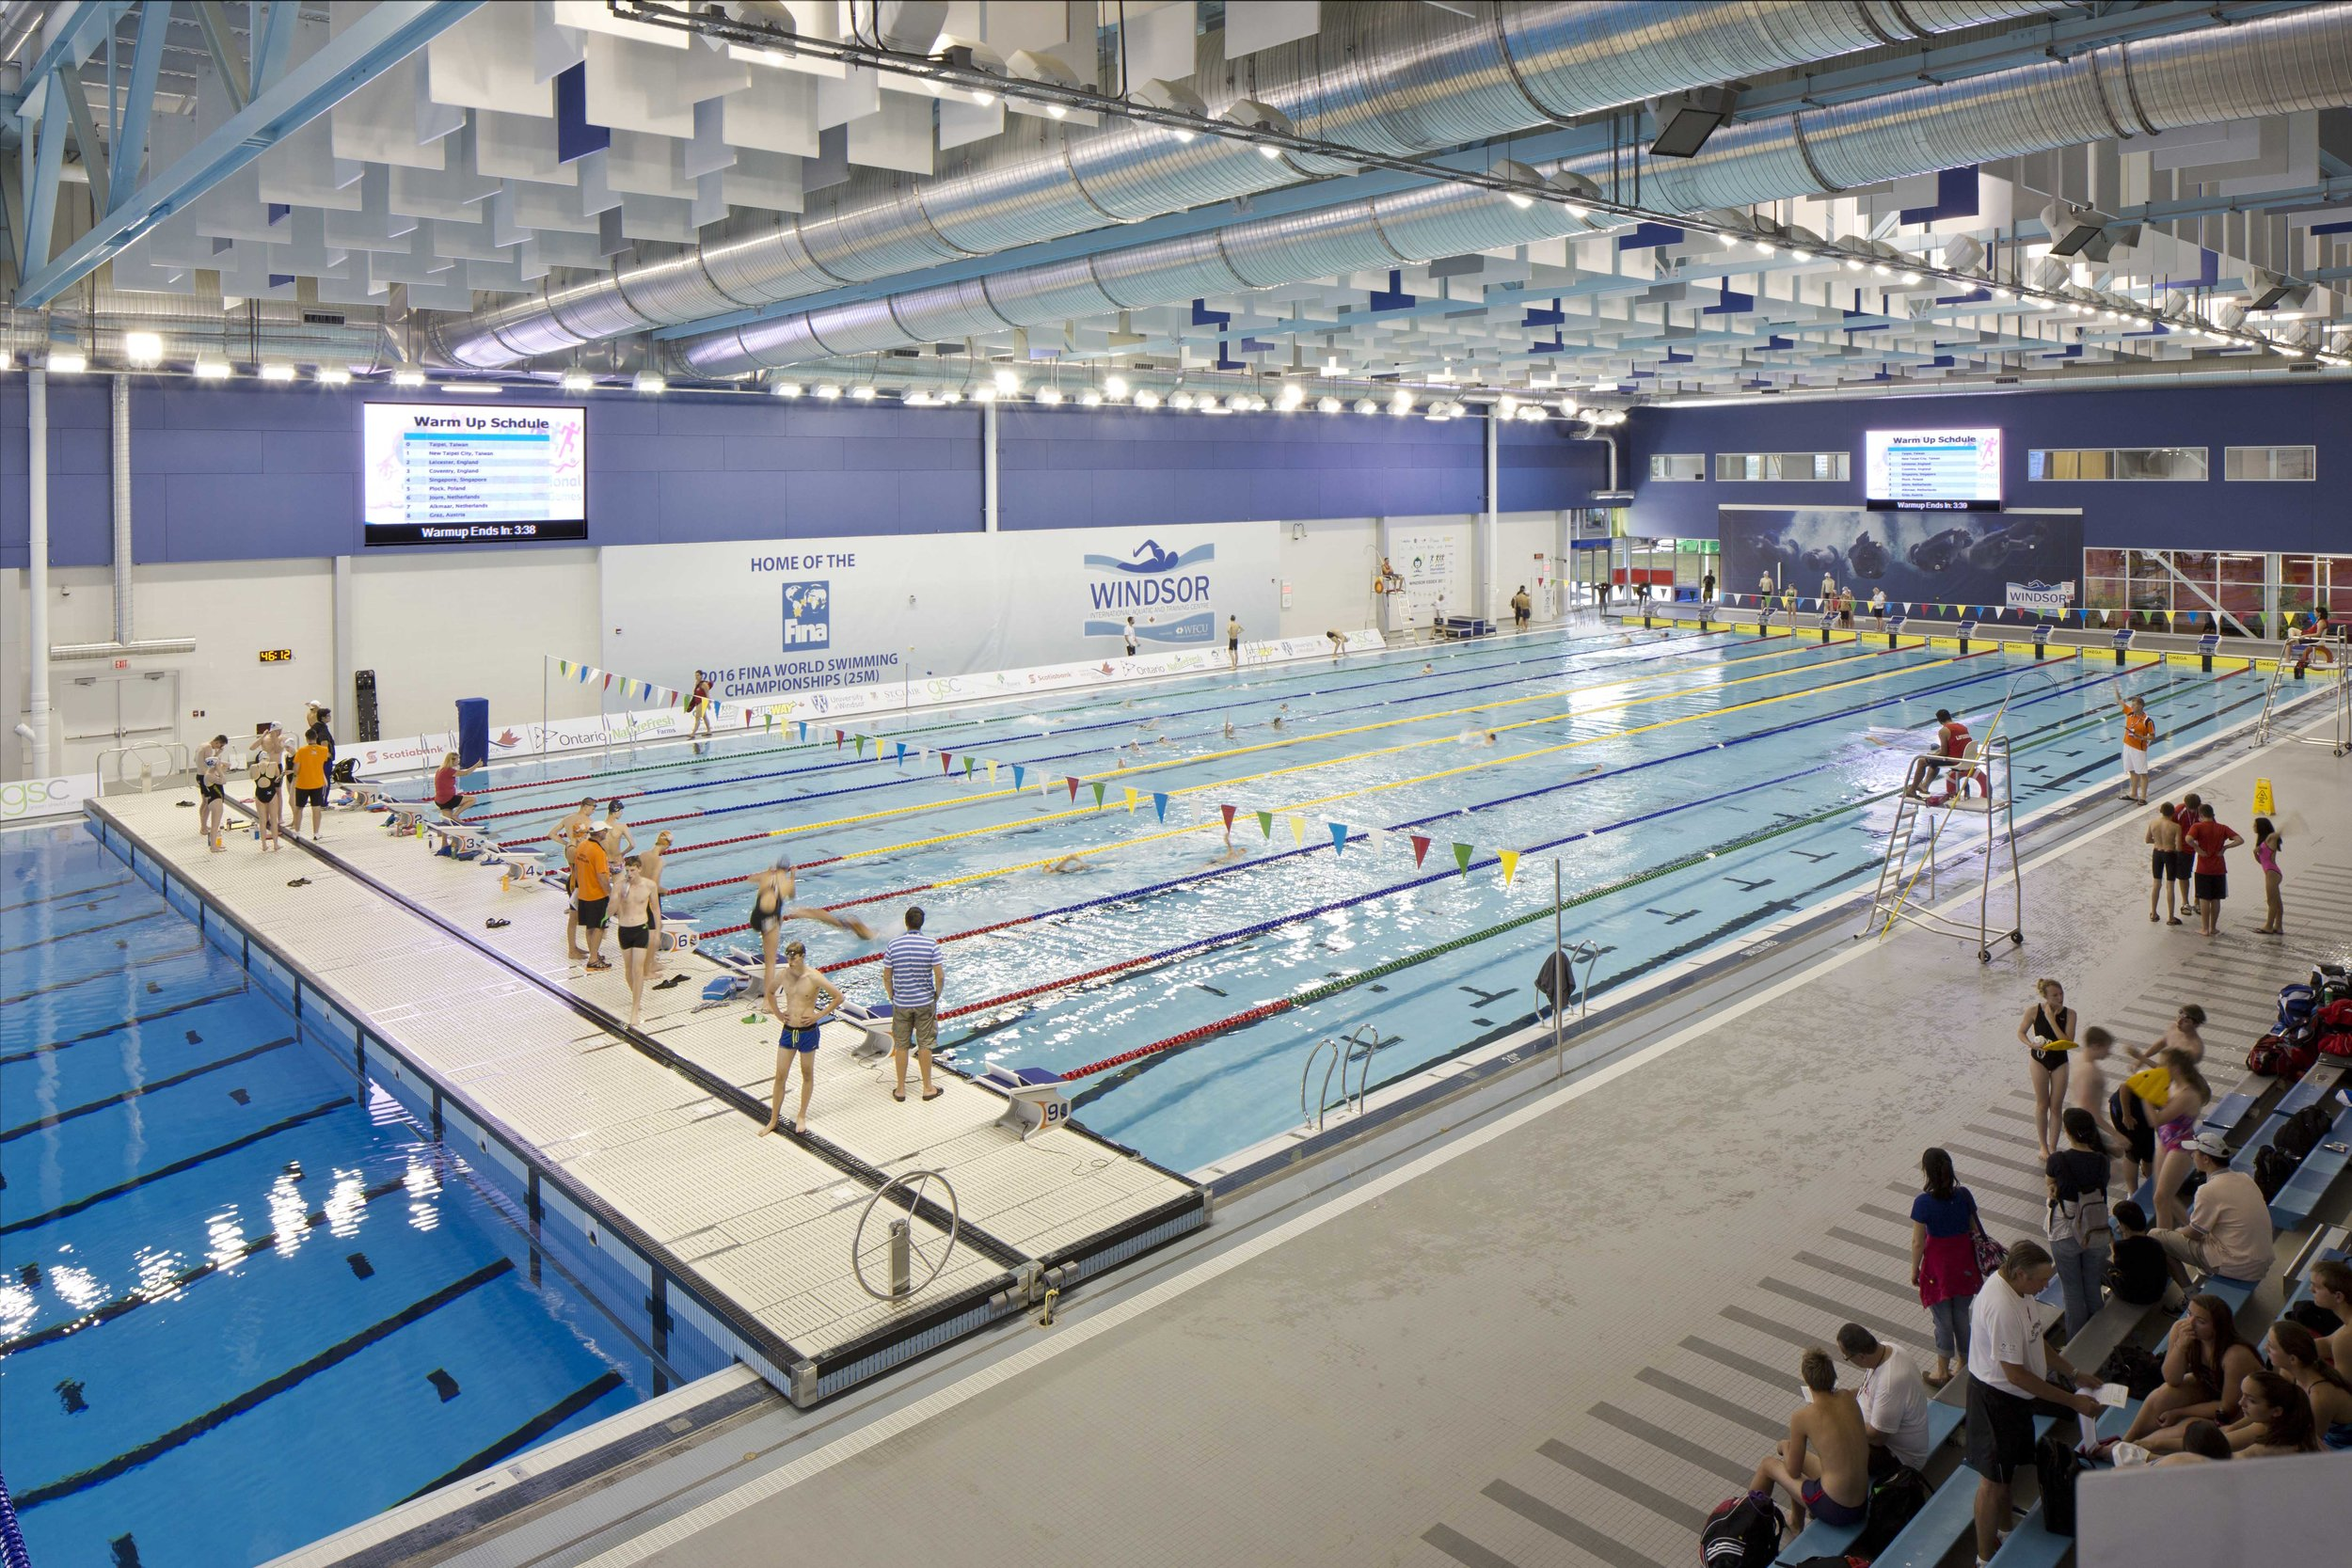 Windsor International Aquatic Centre